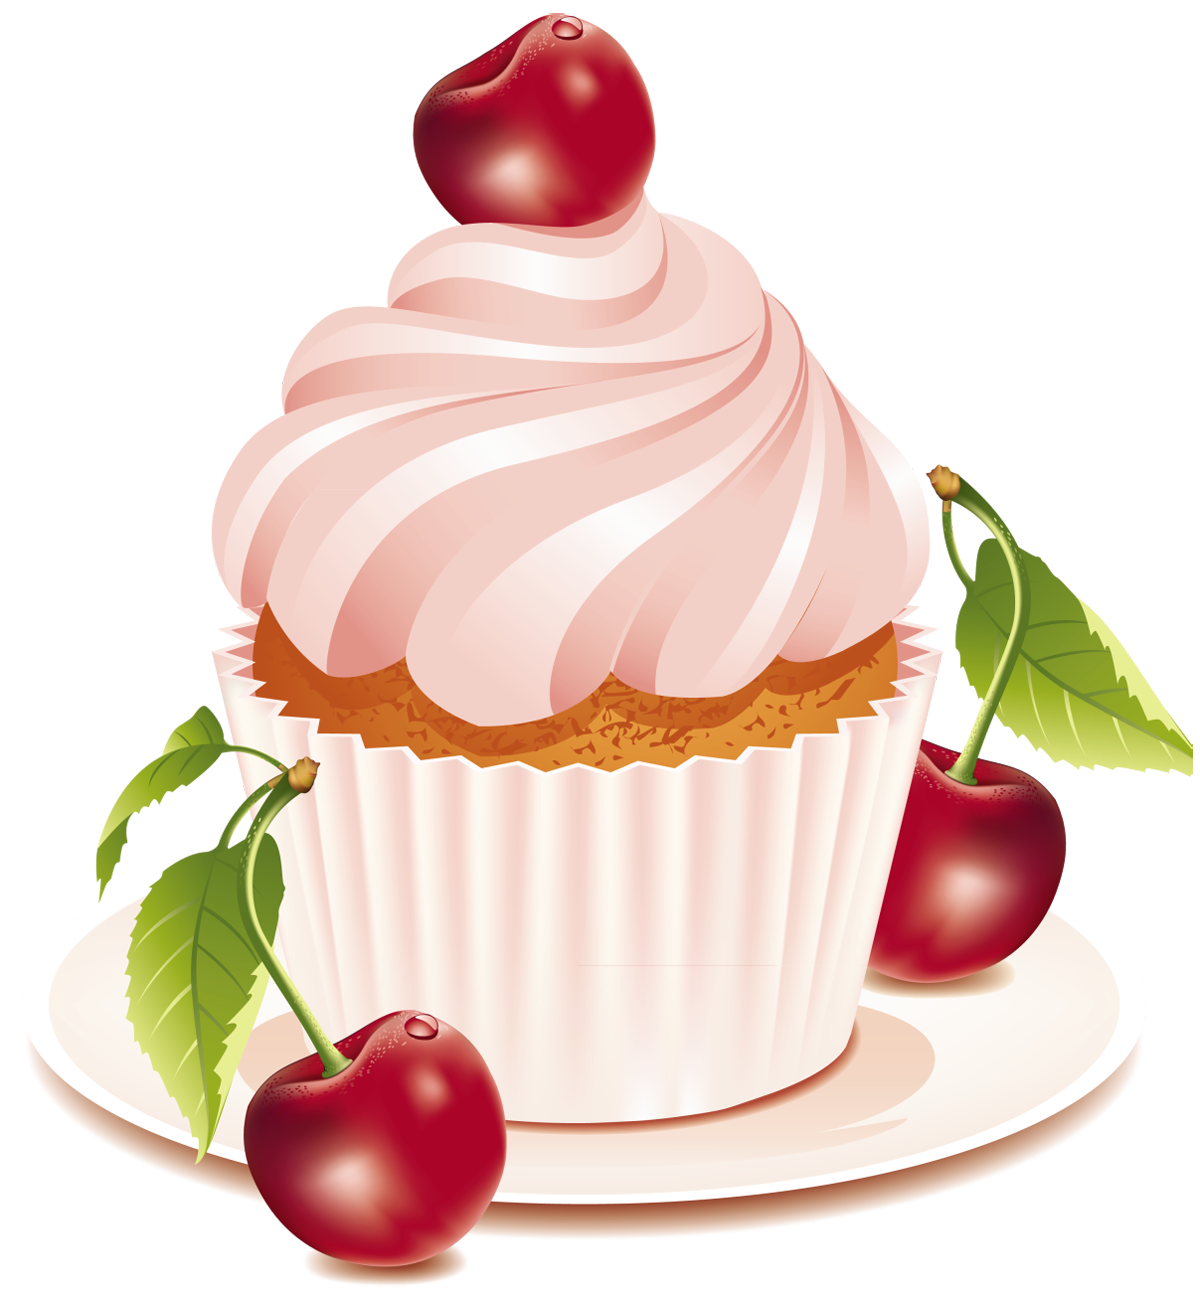 royalty free download Desserts clipart. Cherry cake png gallery